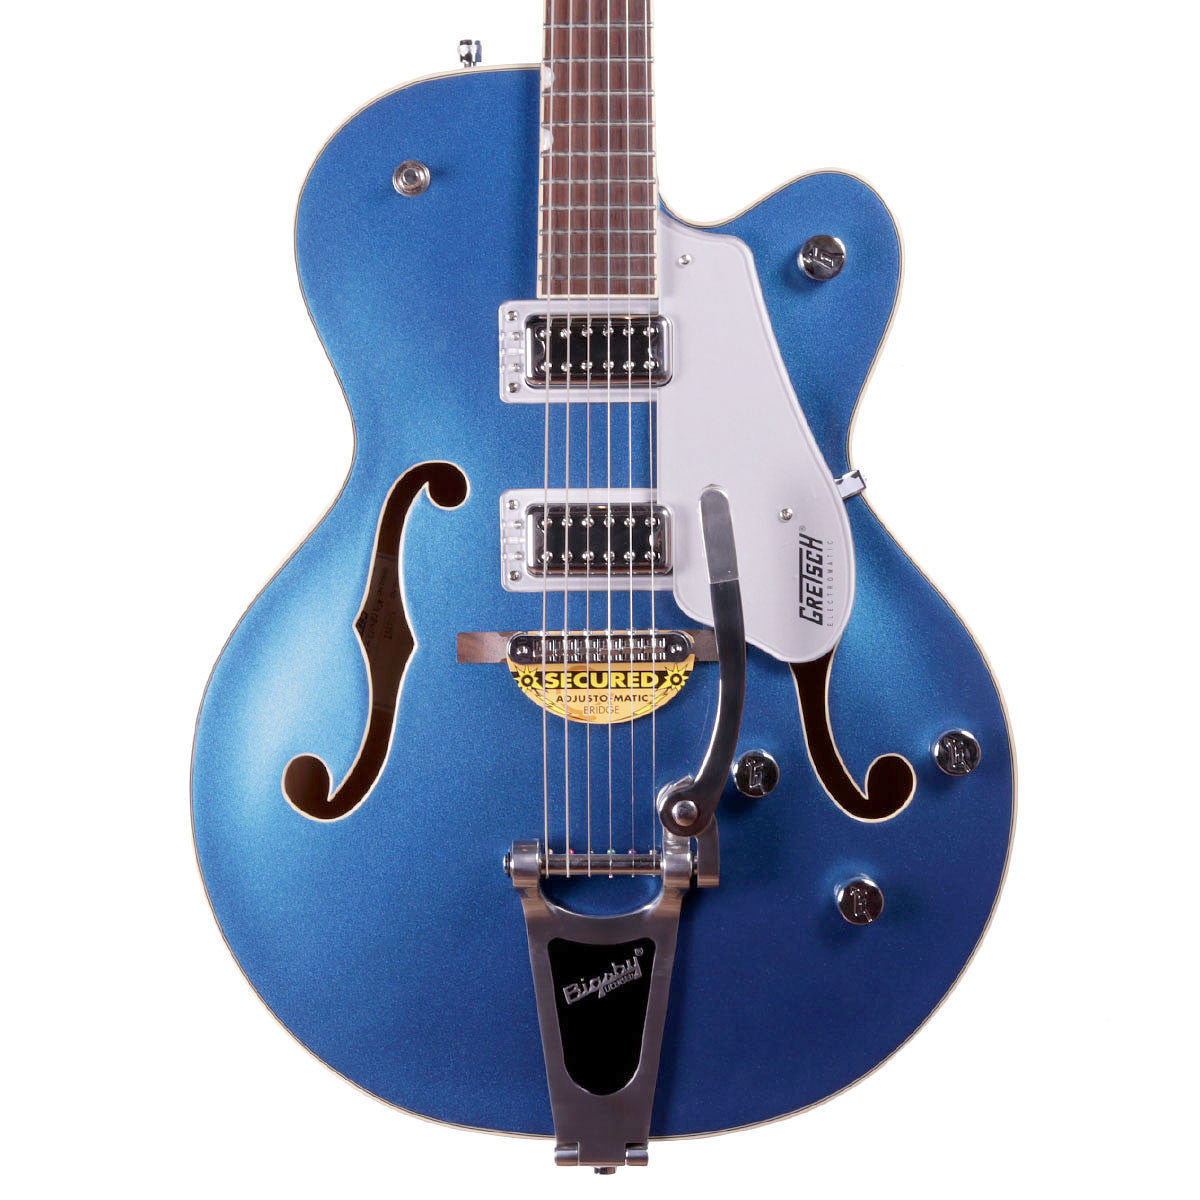 Gretsch G5420T 2016 Electromatic Hollowbody w/Bigsby - Fairlane Blue - Vintage Guitar Boutique - 1